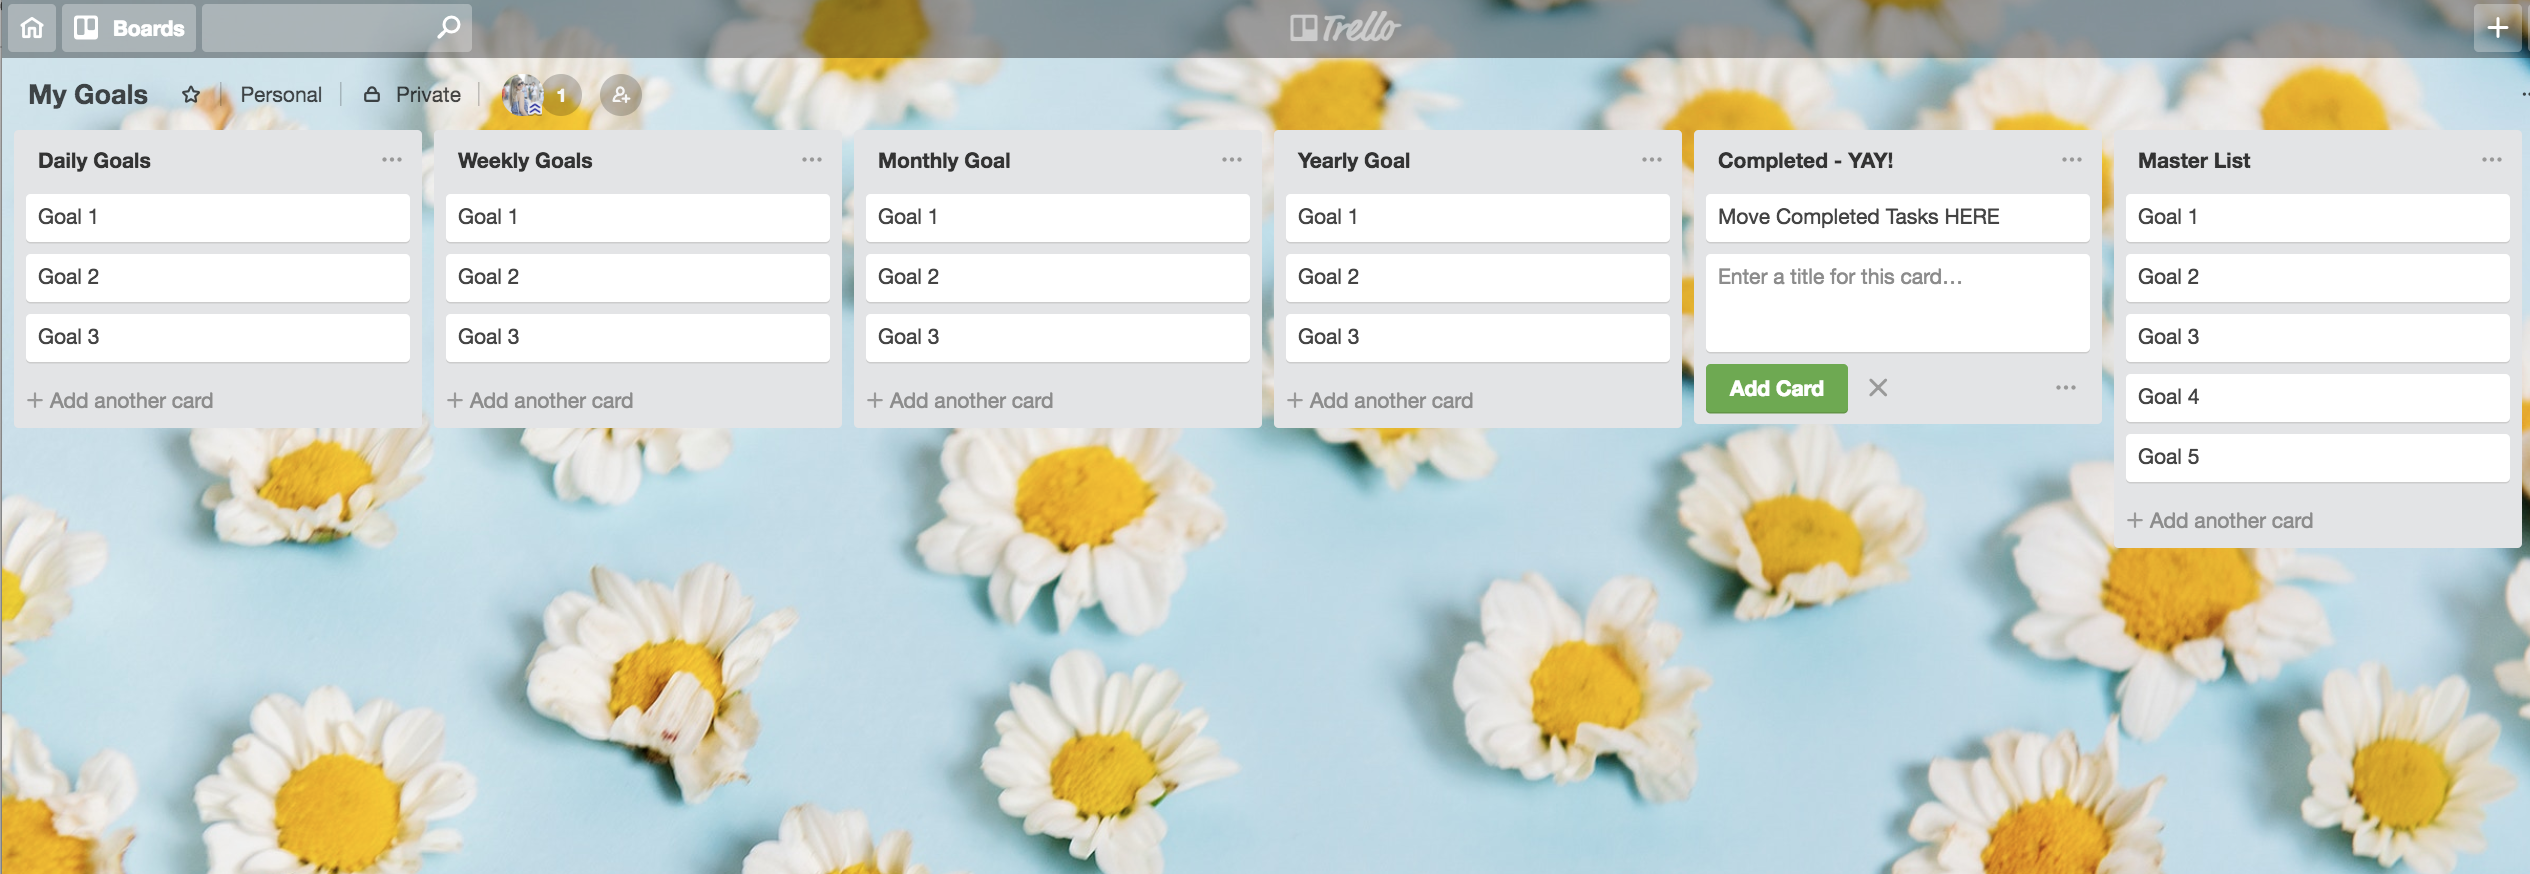 Trello - Best Tools to Get Organized